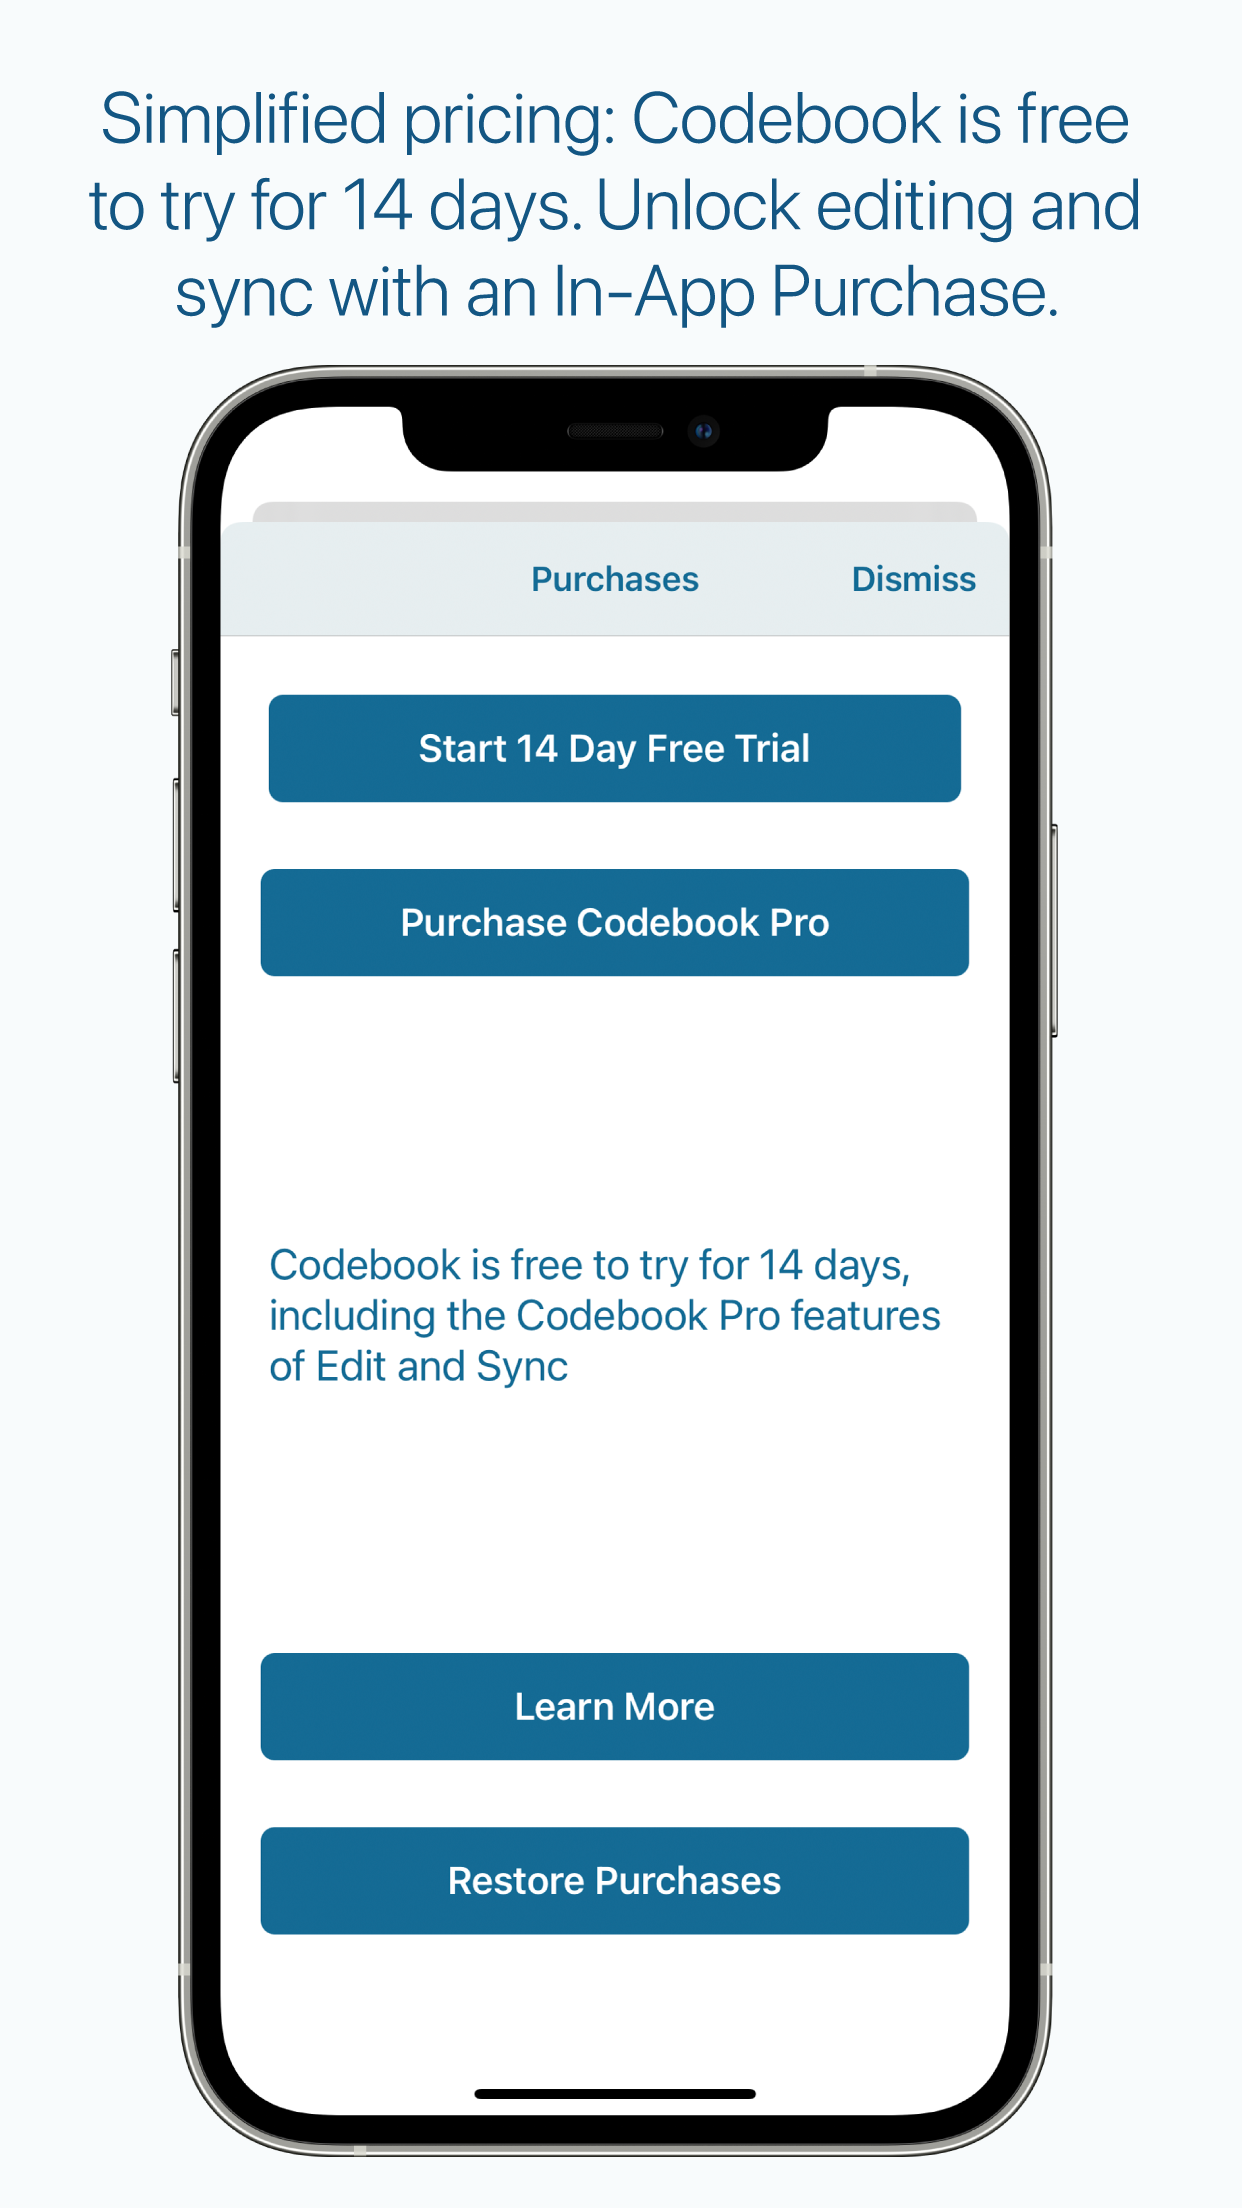 Purchase Codebook Pro